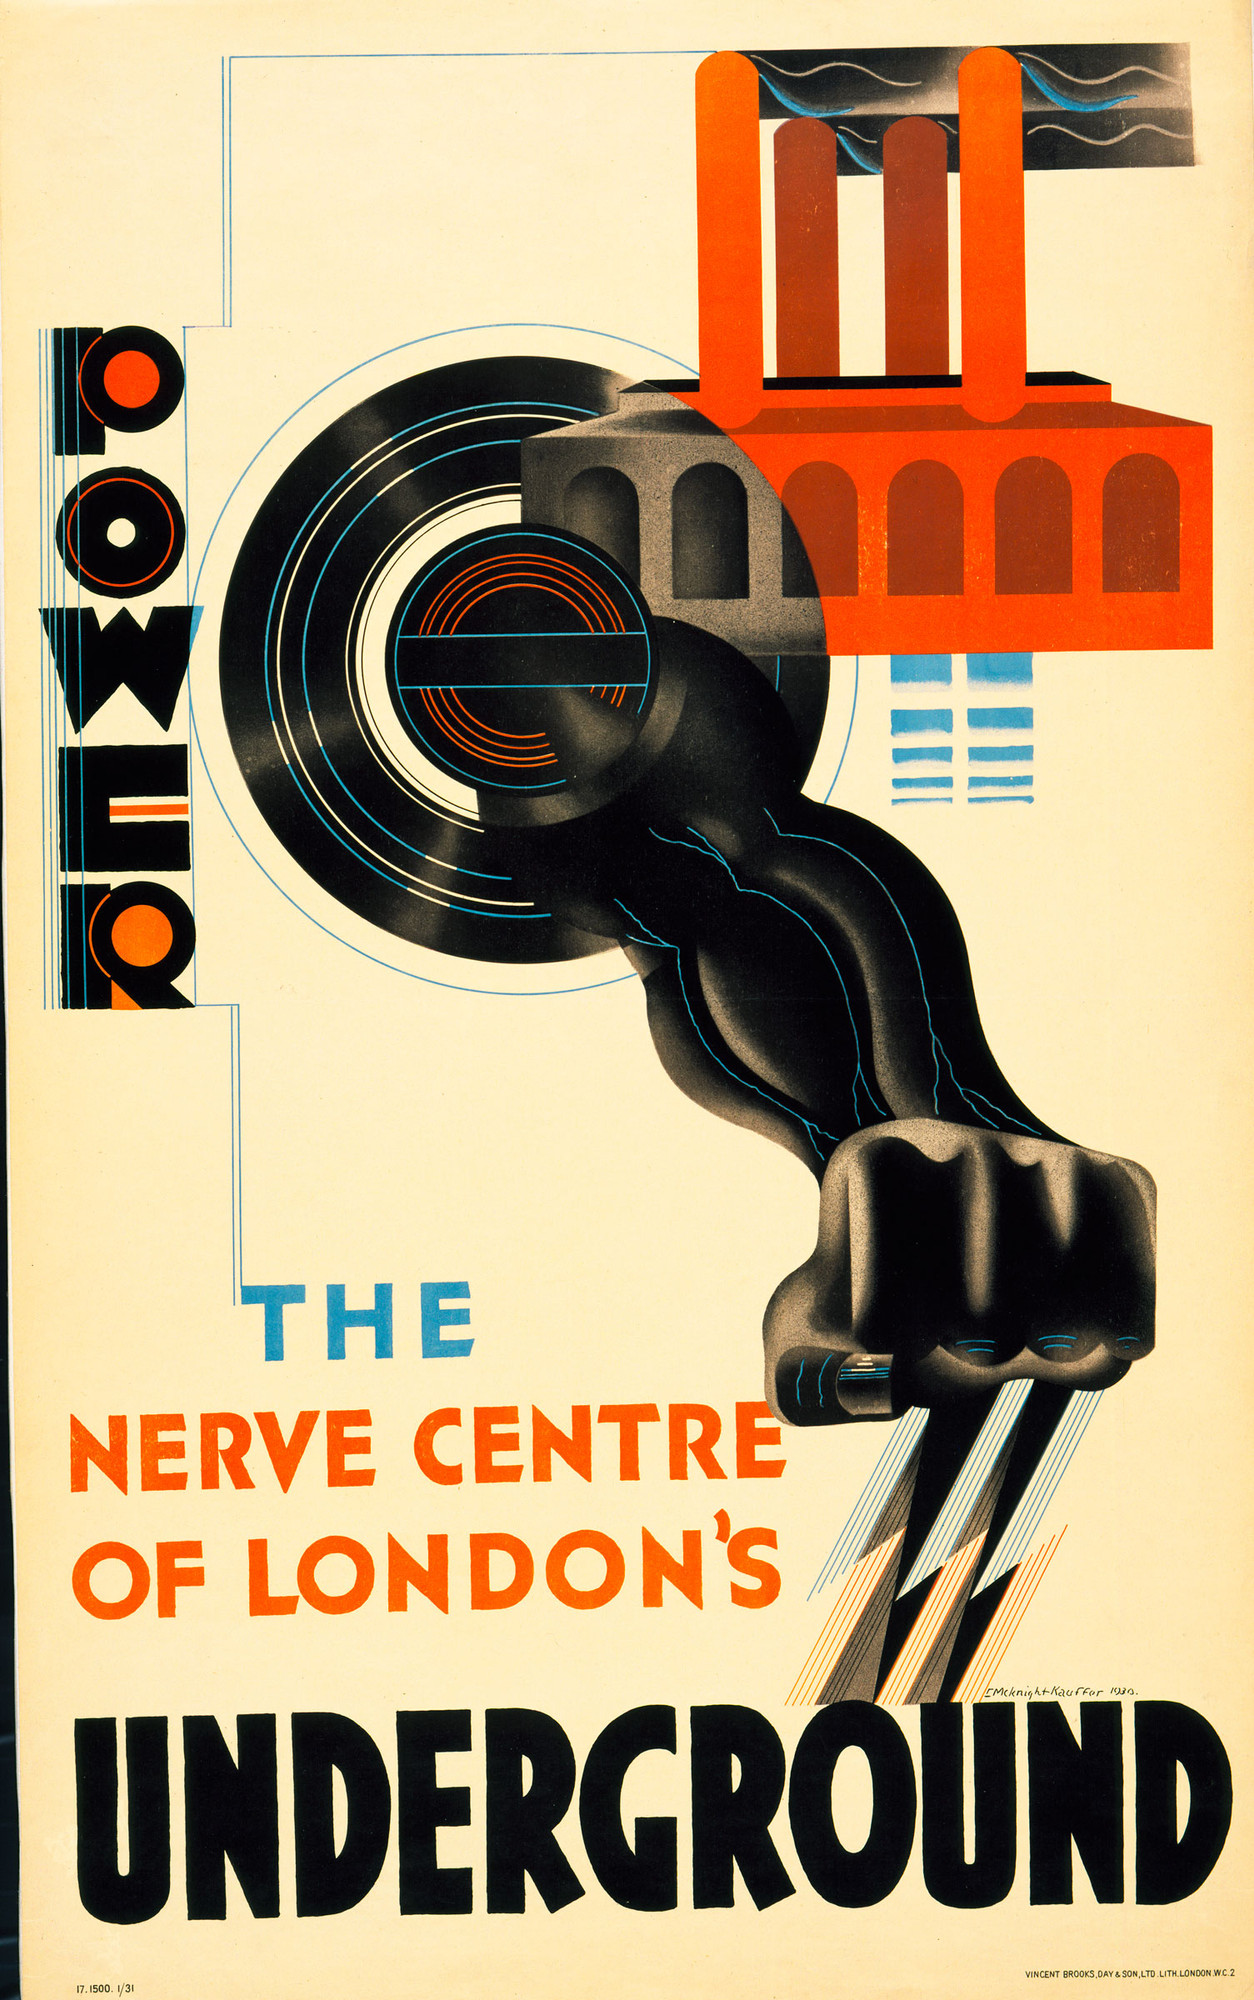 E. McKnight Kauffer. Power, The Nerve Centre of London's Underground. 1930. Lithograph, 40 5⁄8 × 24 3/4″ (103.2 × 62.9cm). The Museum of Modern Art, New York. Gift of the artist